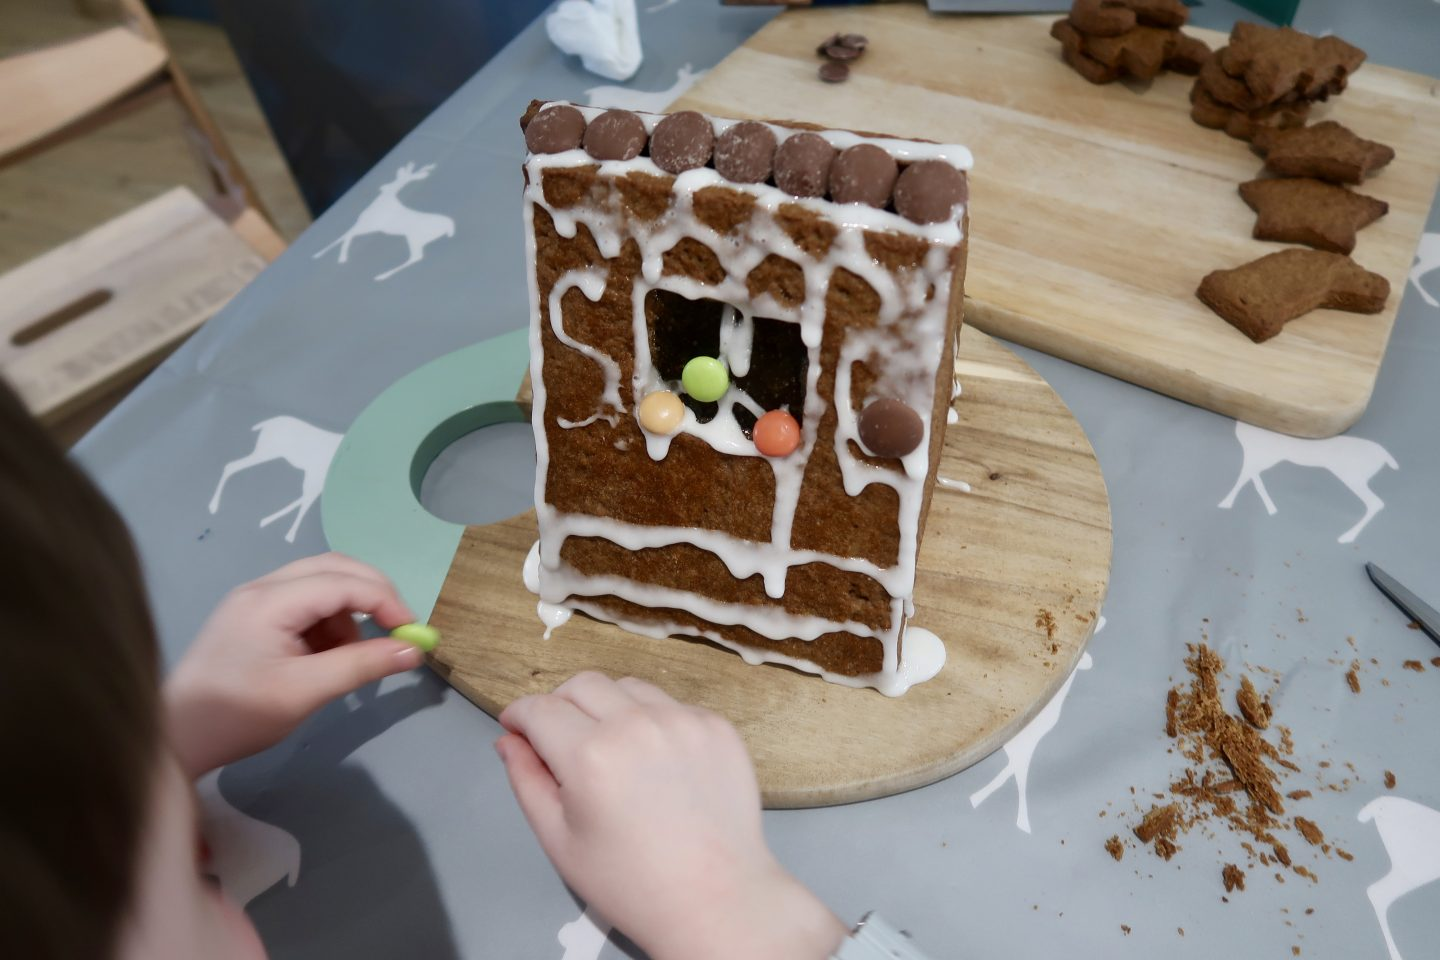 A gingerbread house being decorated by a toddler. On a wooden board behind it lies a pile of Christmas cookies